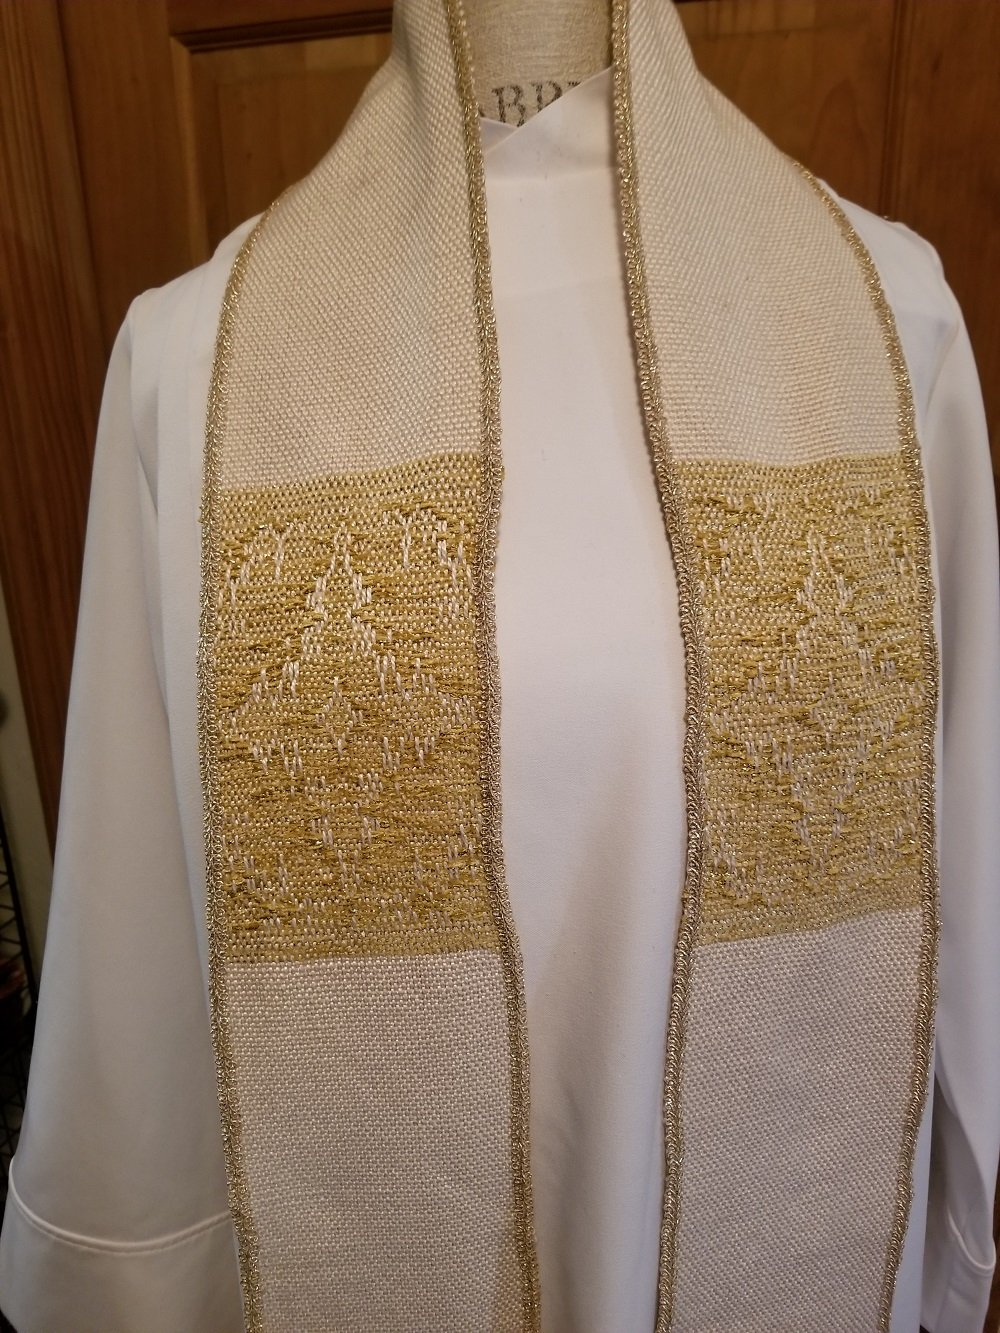 Incarnation Gold on White Clergy Stole by Ephods and Pomegranates Handwovens